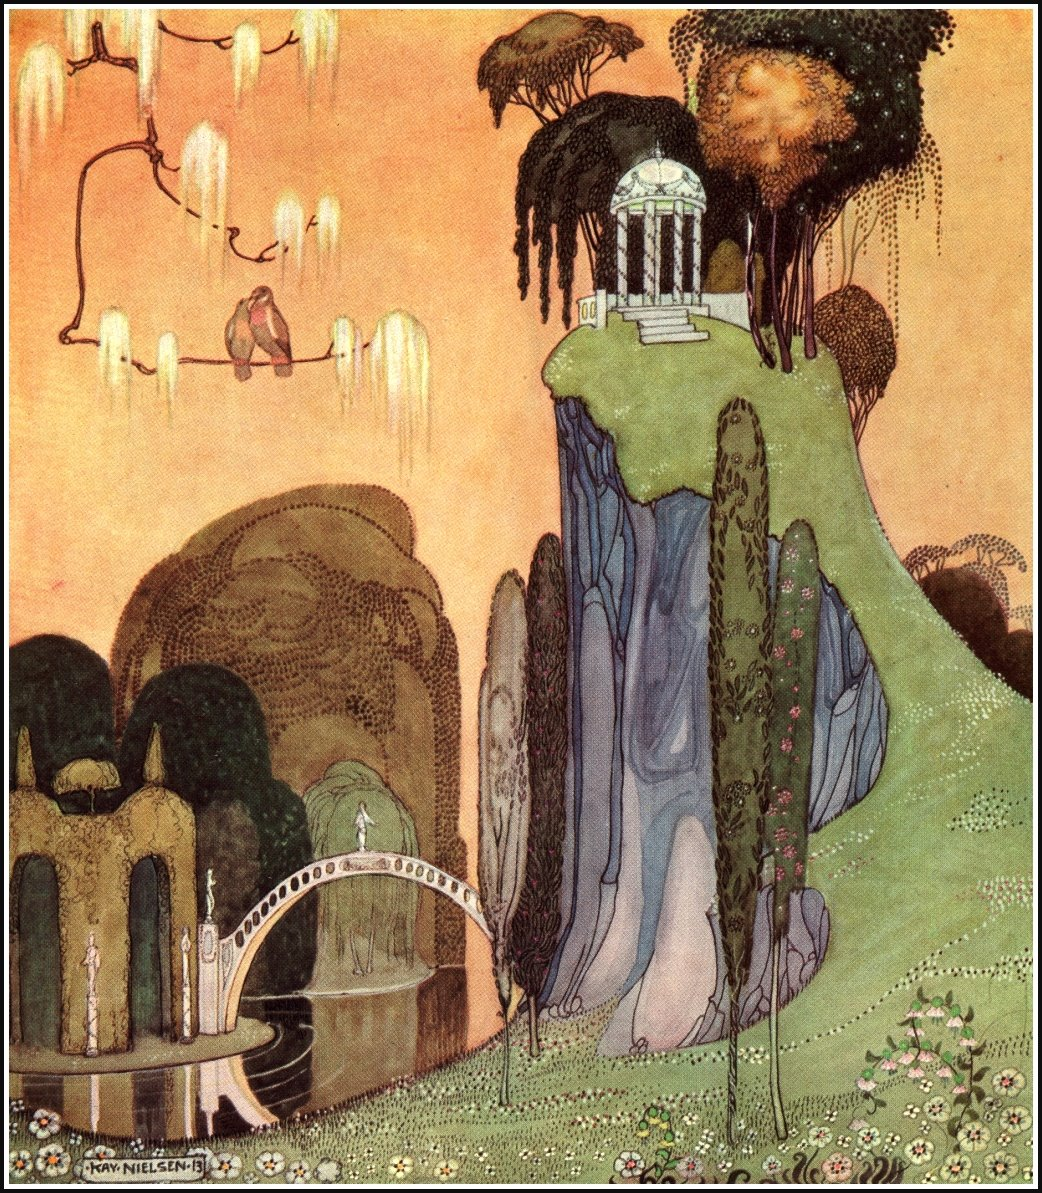 kay nielsen powder color.jpeg